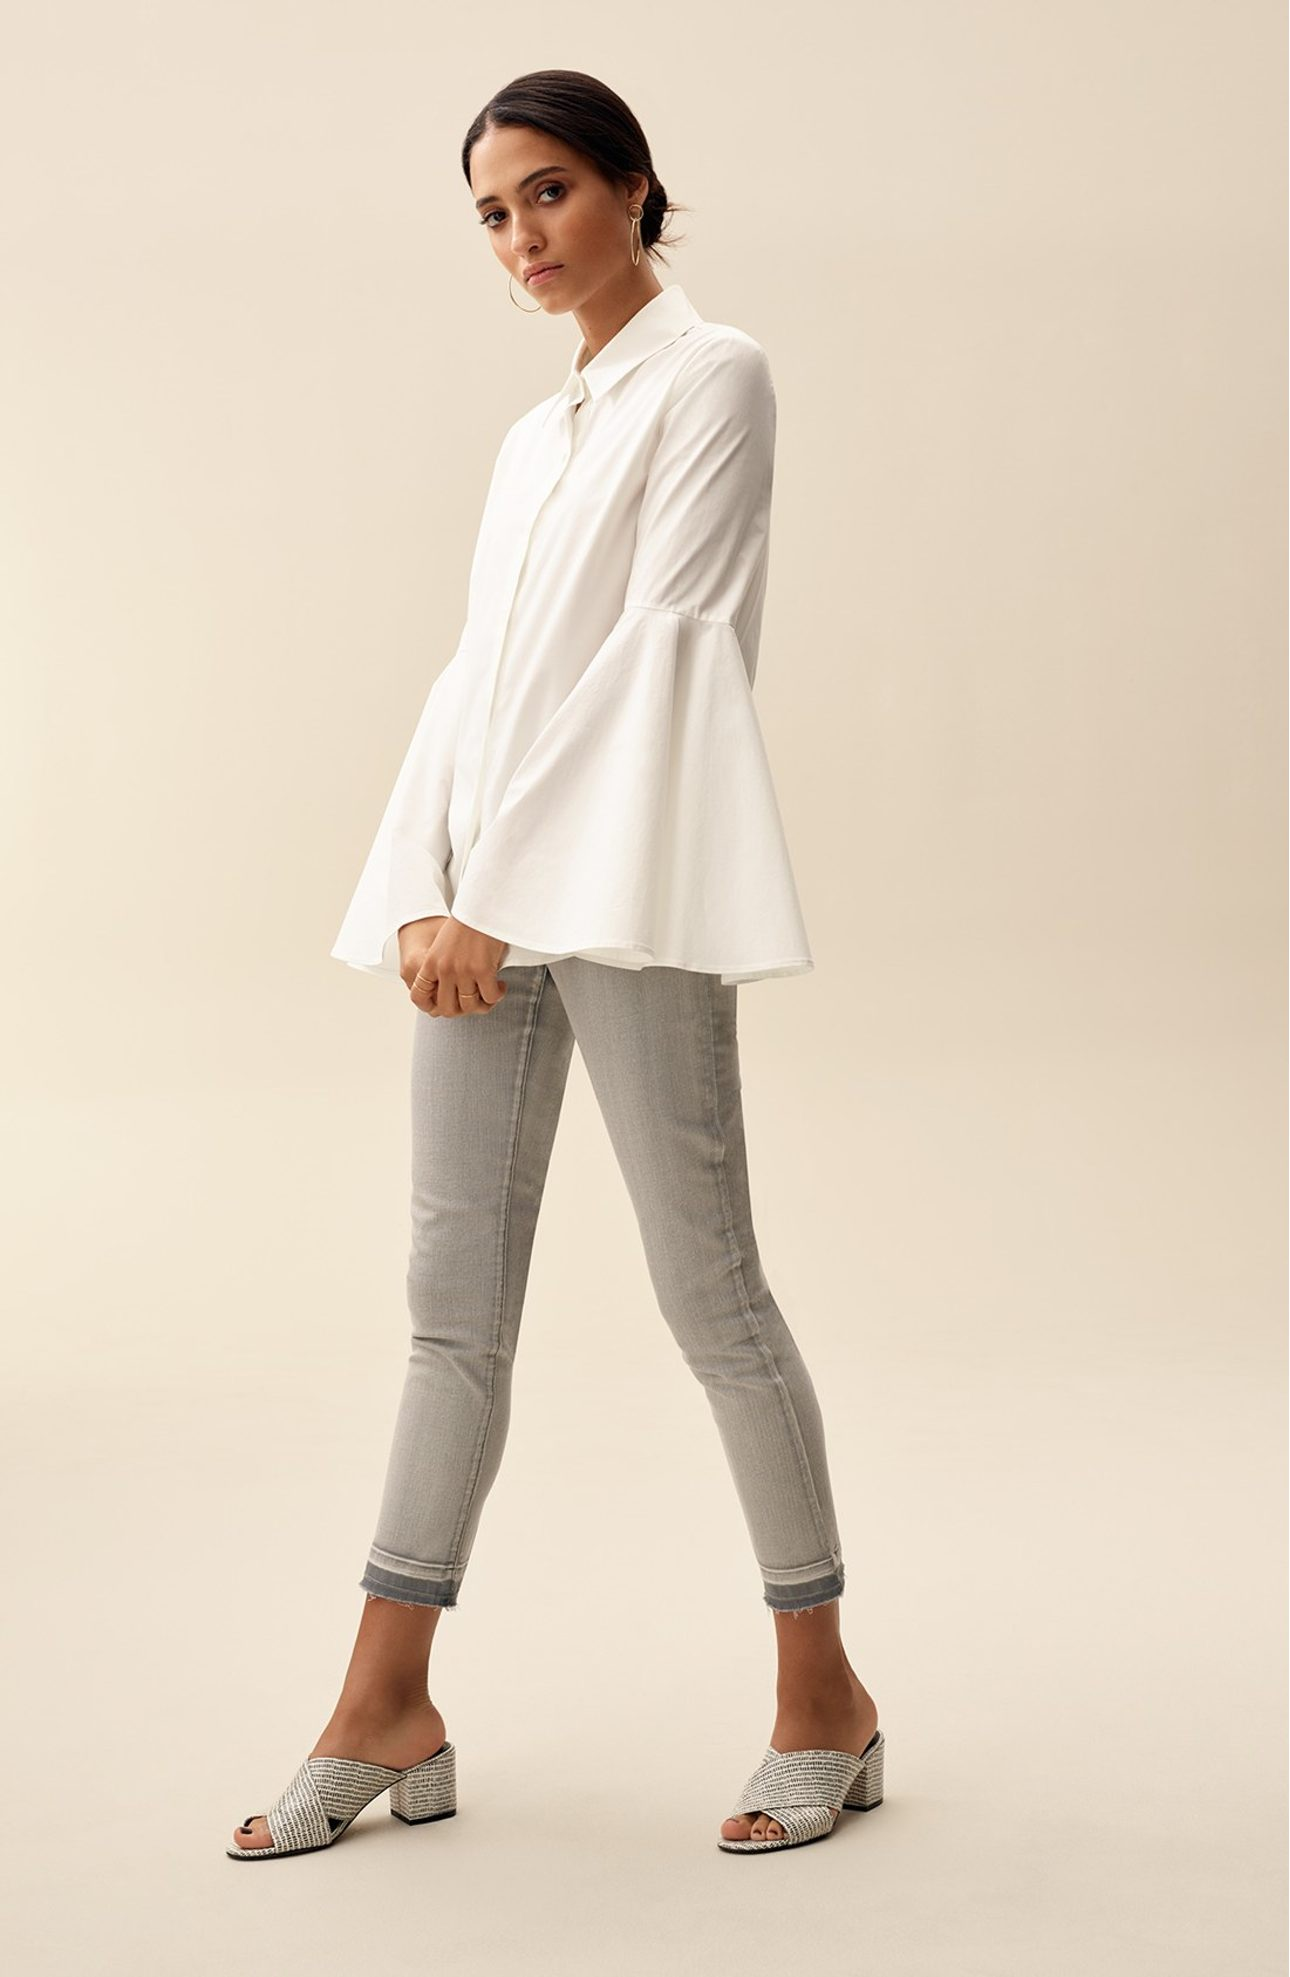 Bell Sleeve Shirt - $89.00 (Image: Nordstrom)